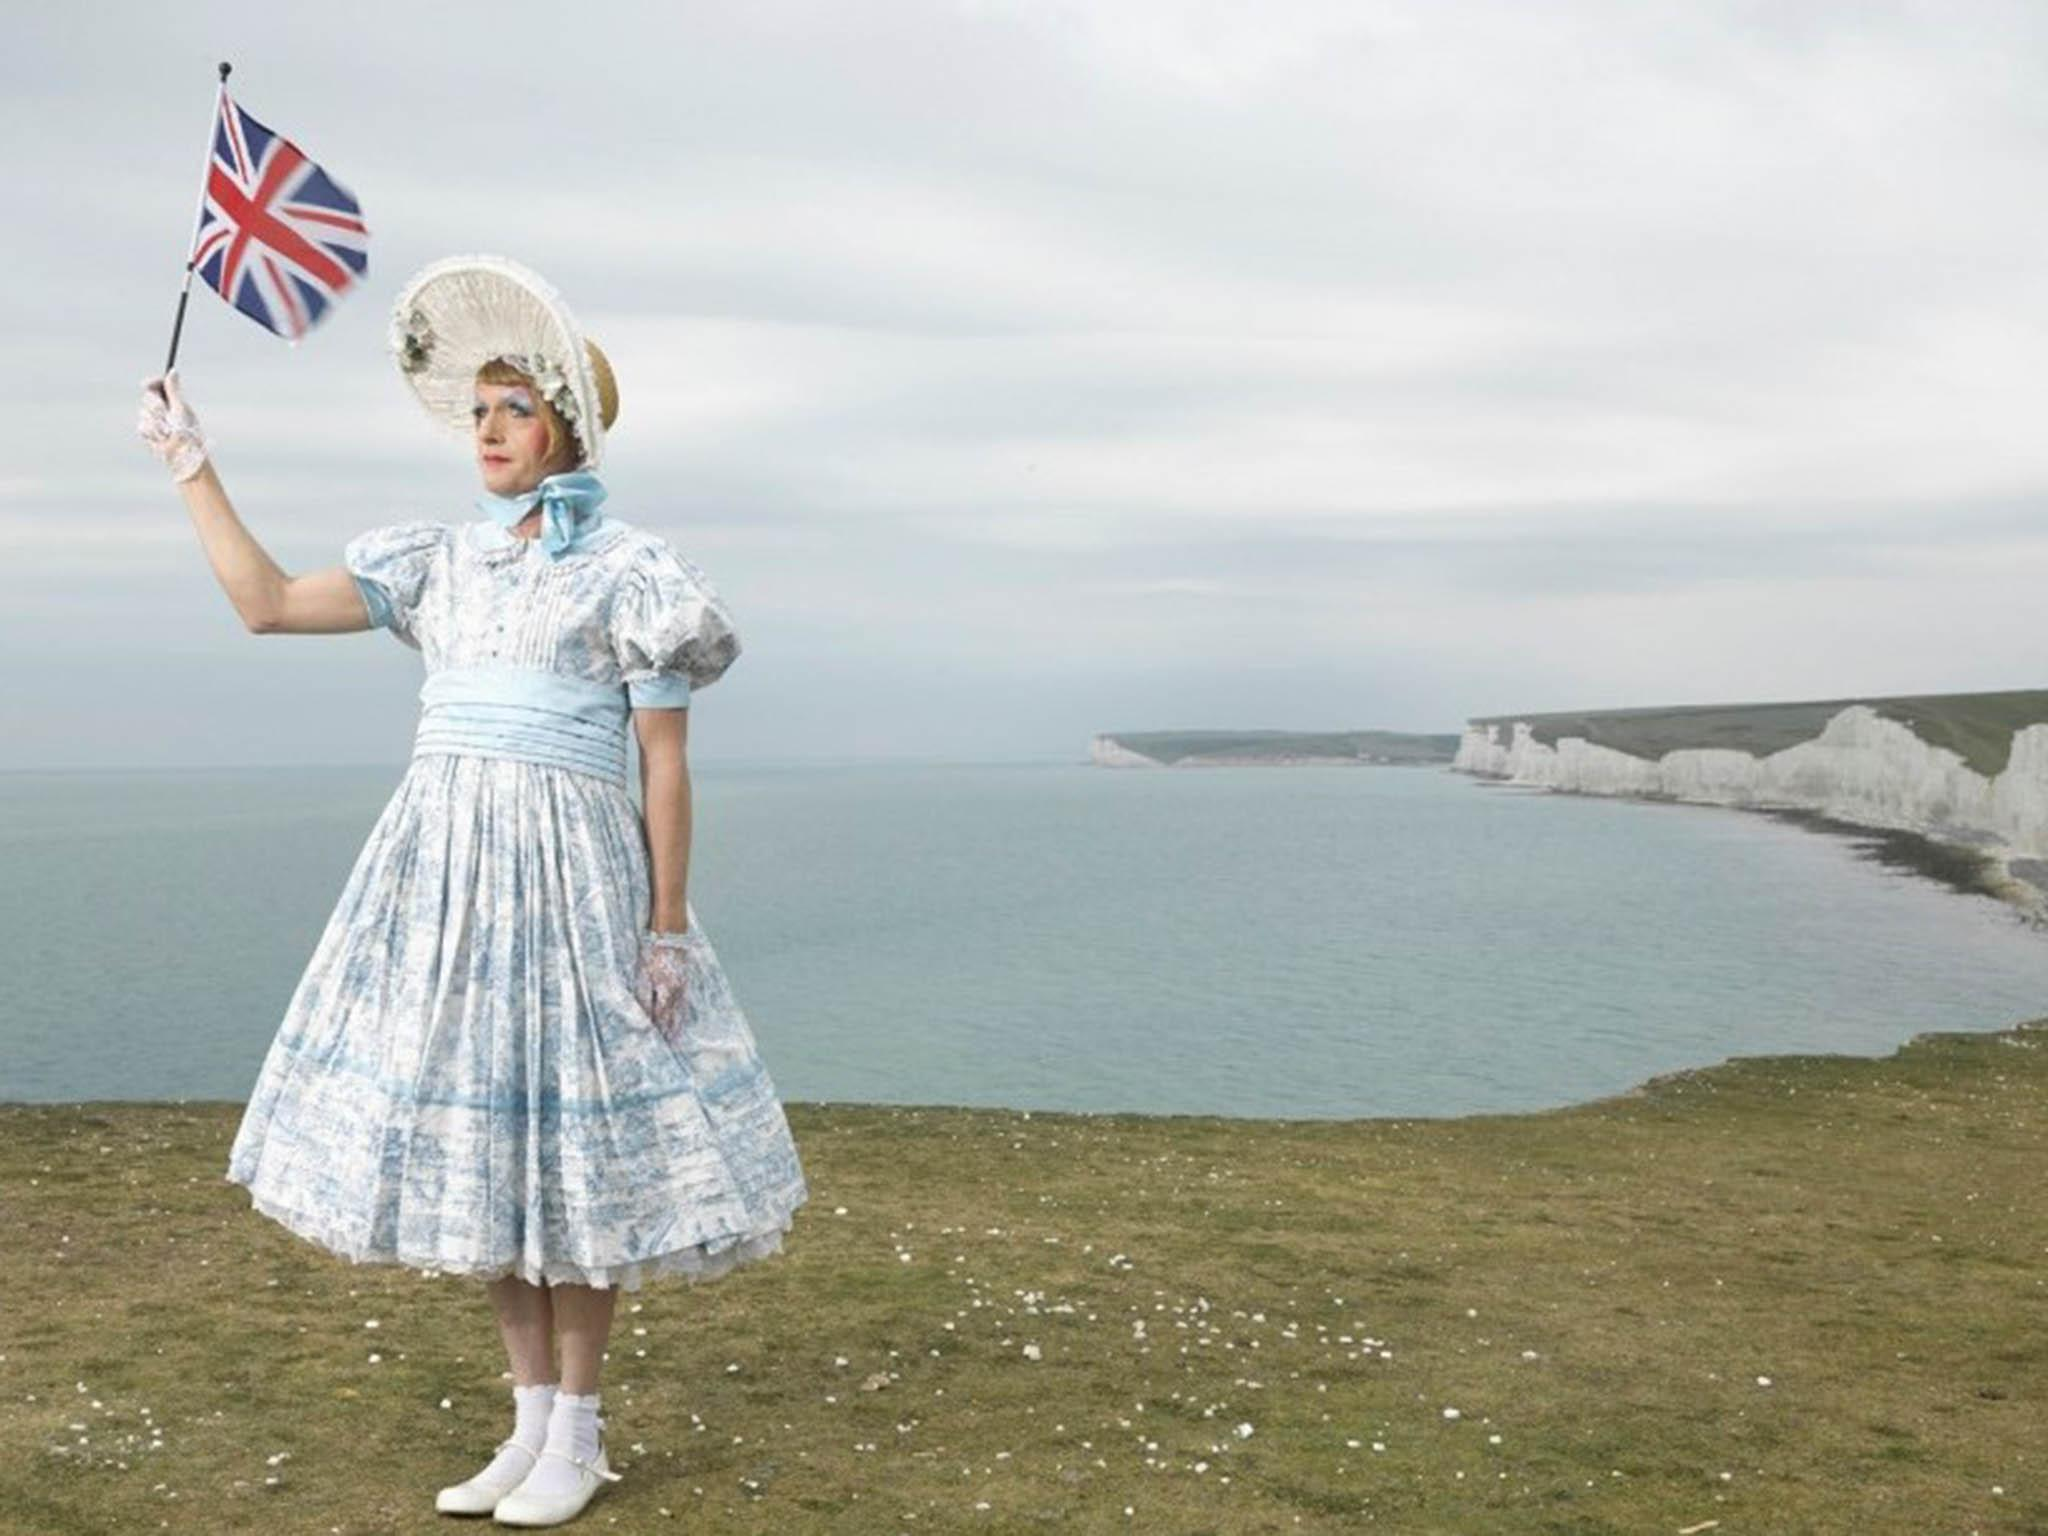 It takes a man in a dress to make sense of Brexit